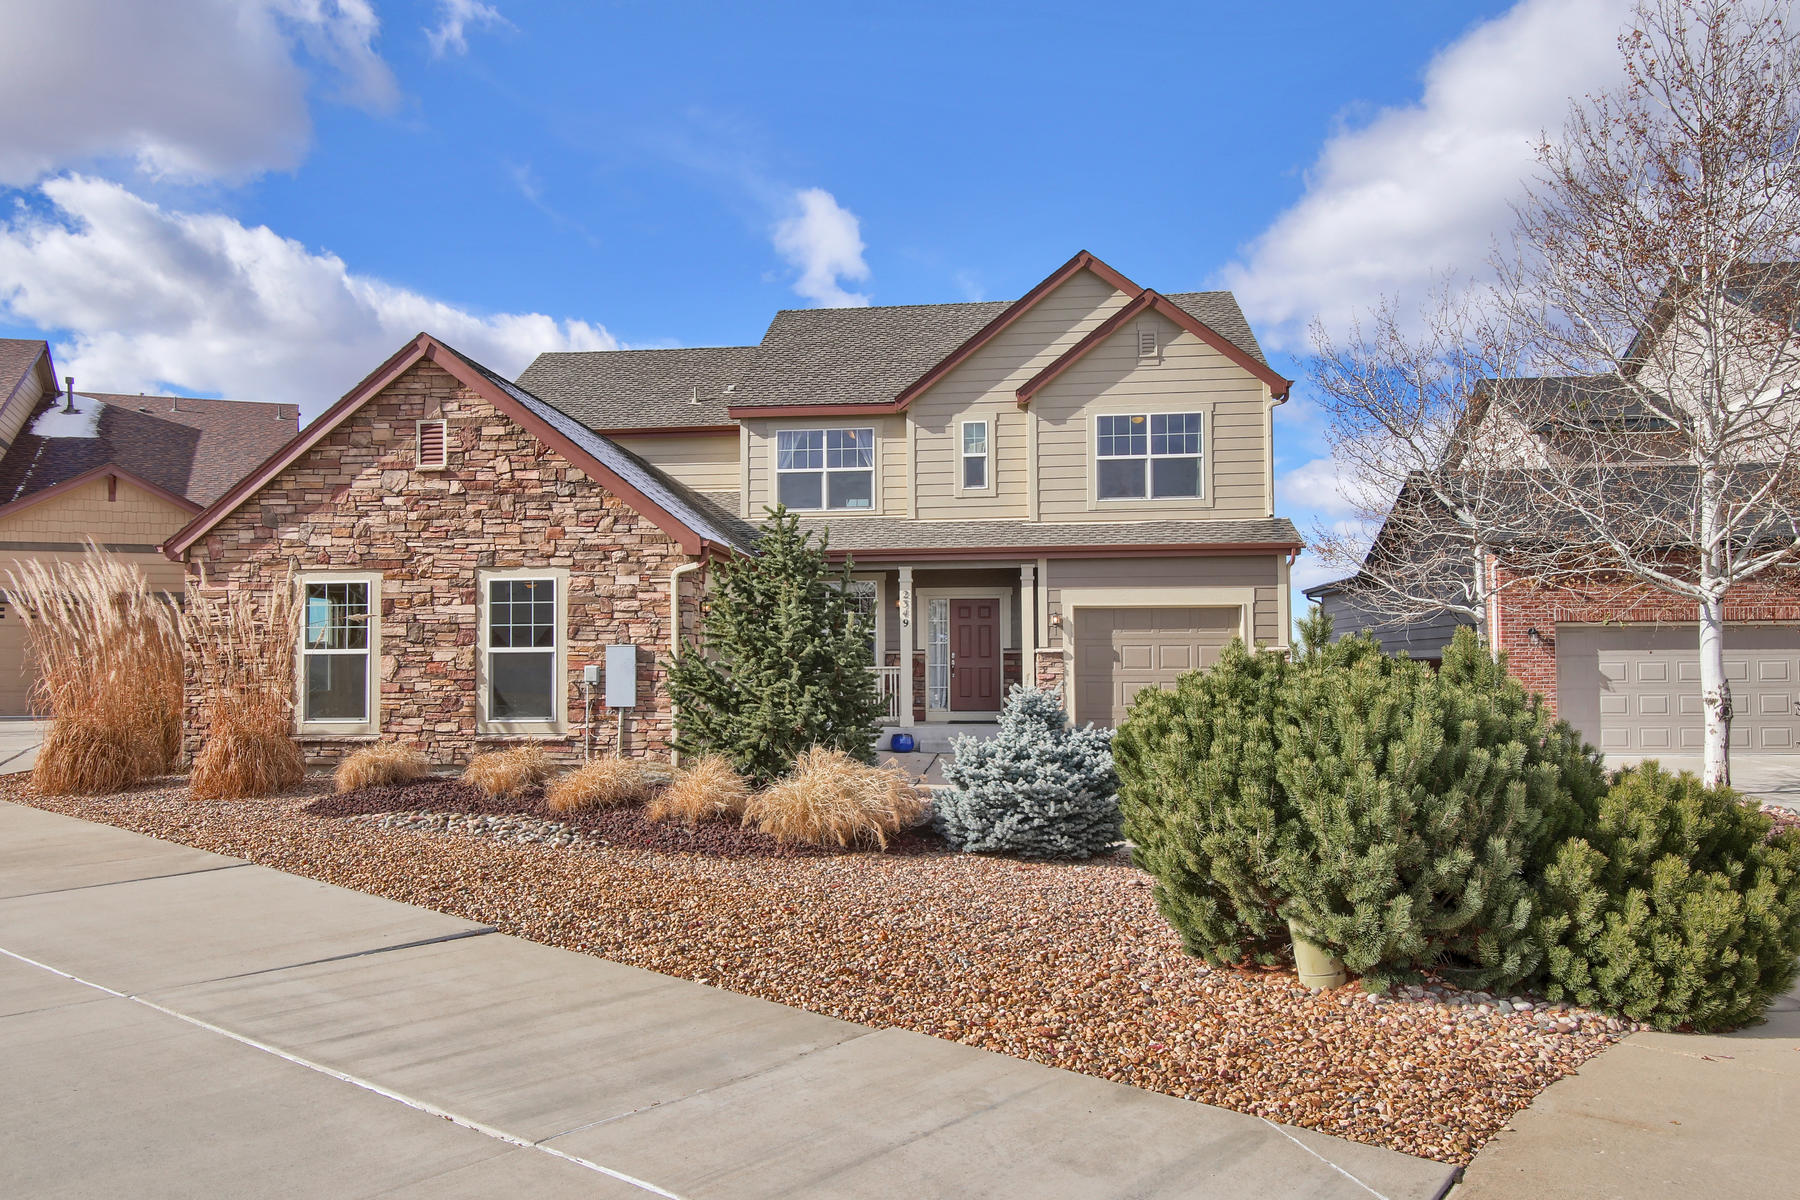 Single Family Home for Active at 2349 Tavern Way 2349 Tavern Way Castle Rock, Colorado 80104 United States